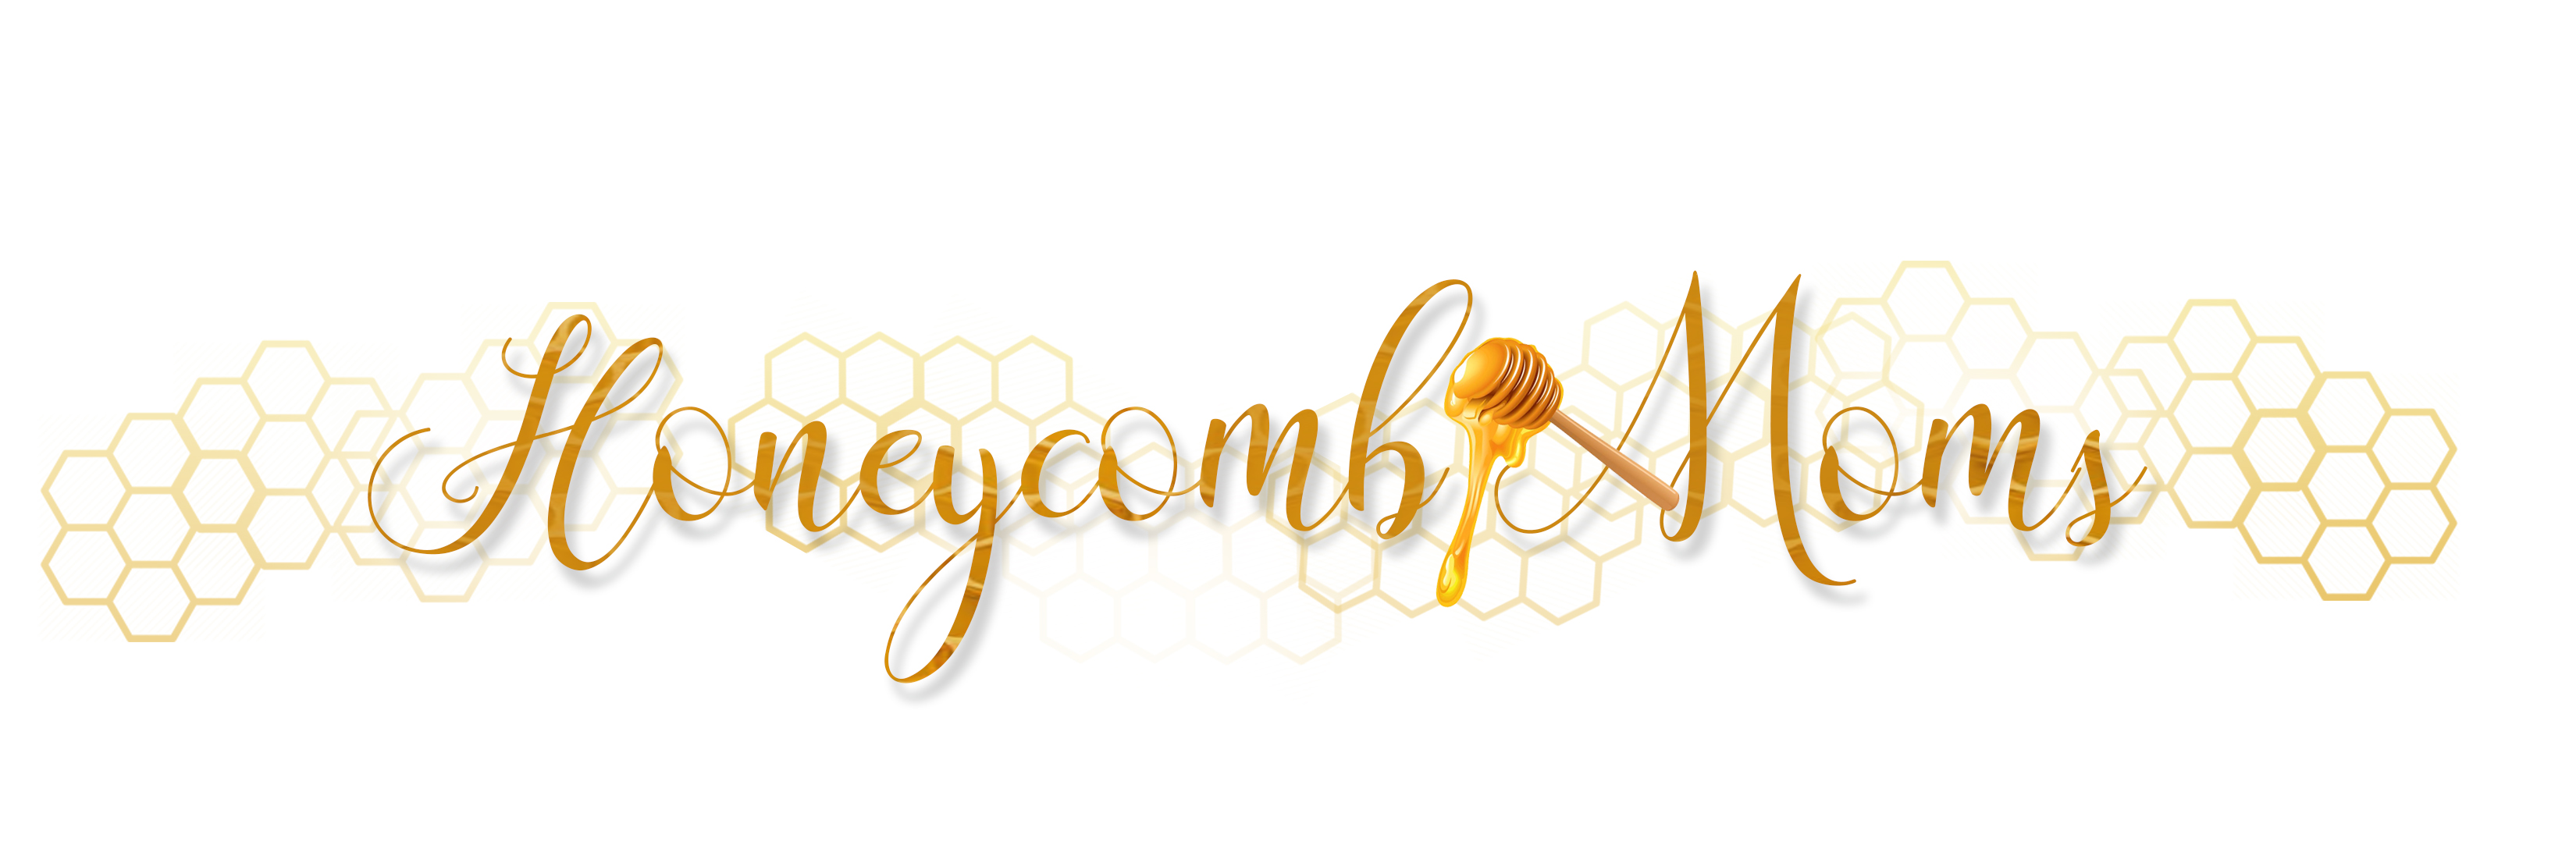 Honeycomb Moms logo white background